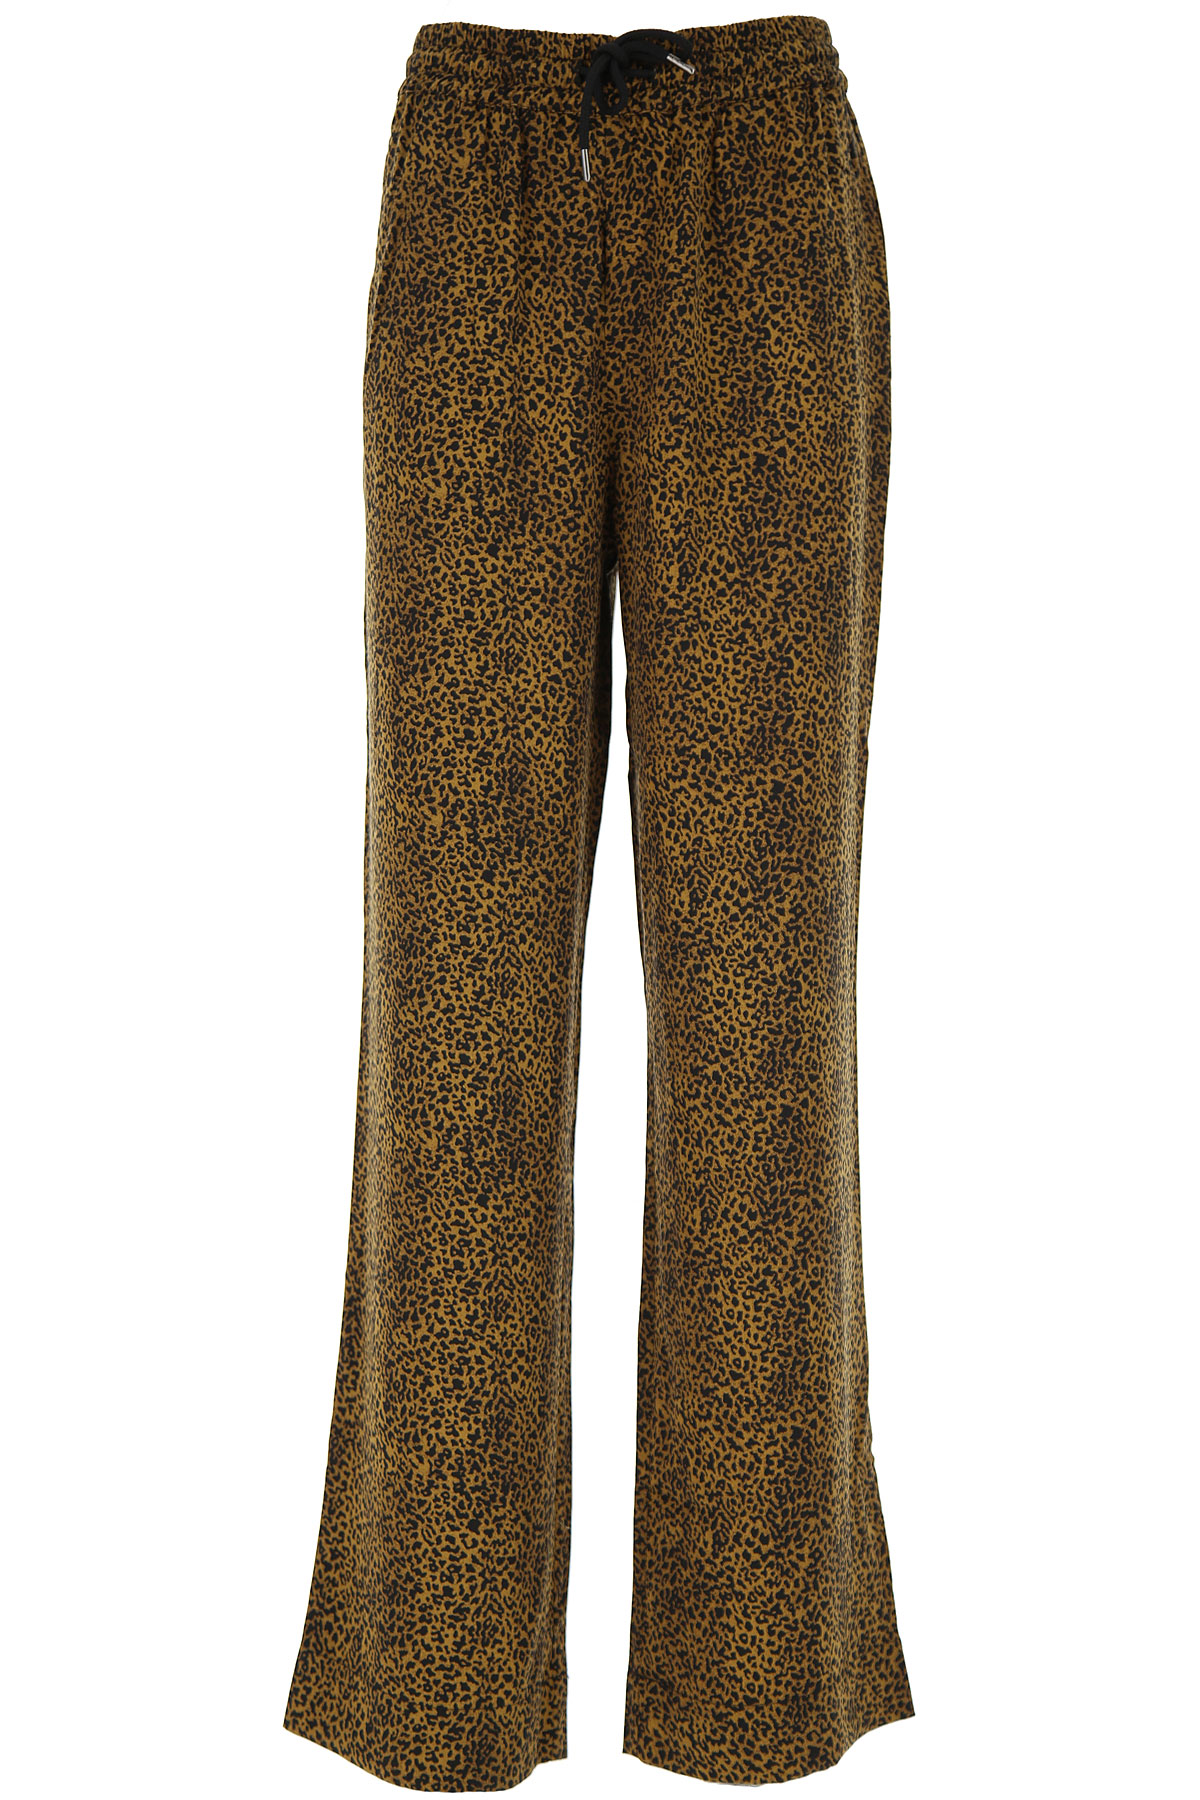 ESSENTIEL Antwerp Pants for Women On Sale, Black, lyocell, 2019, 26 28 4